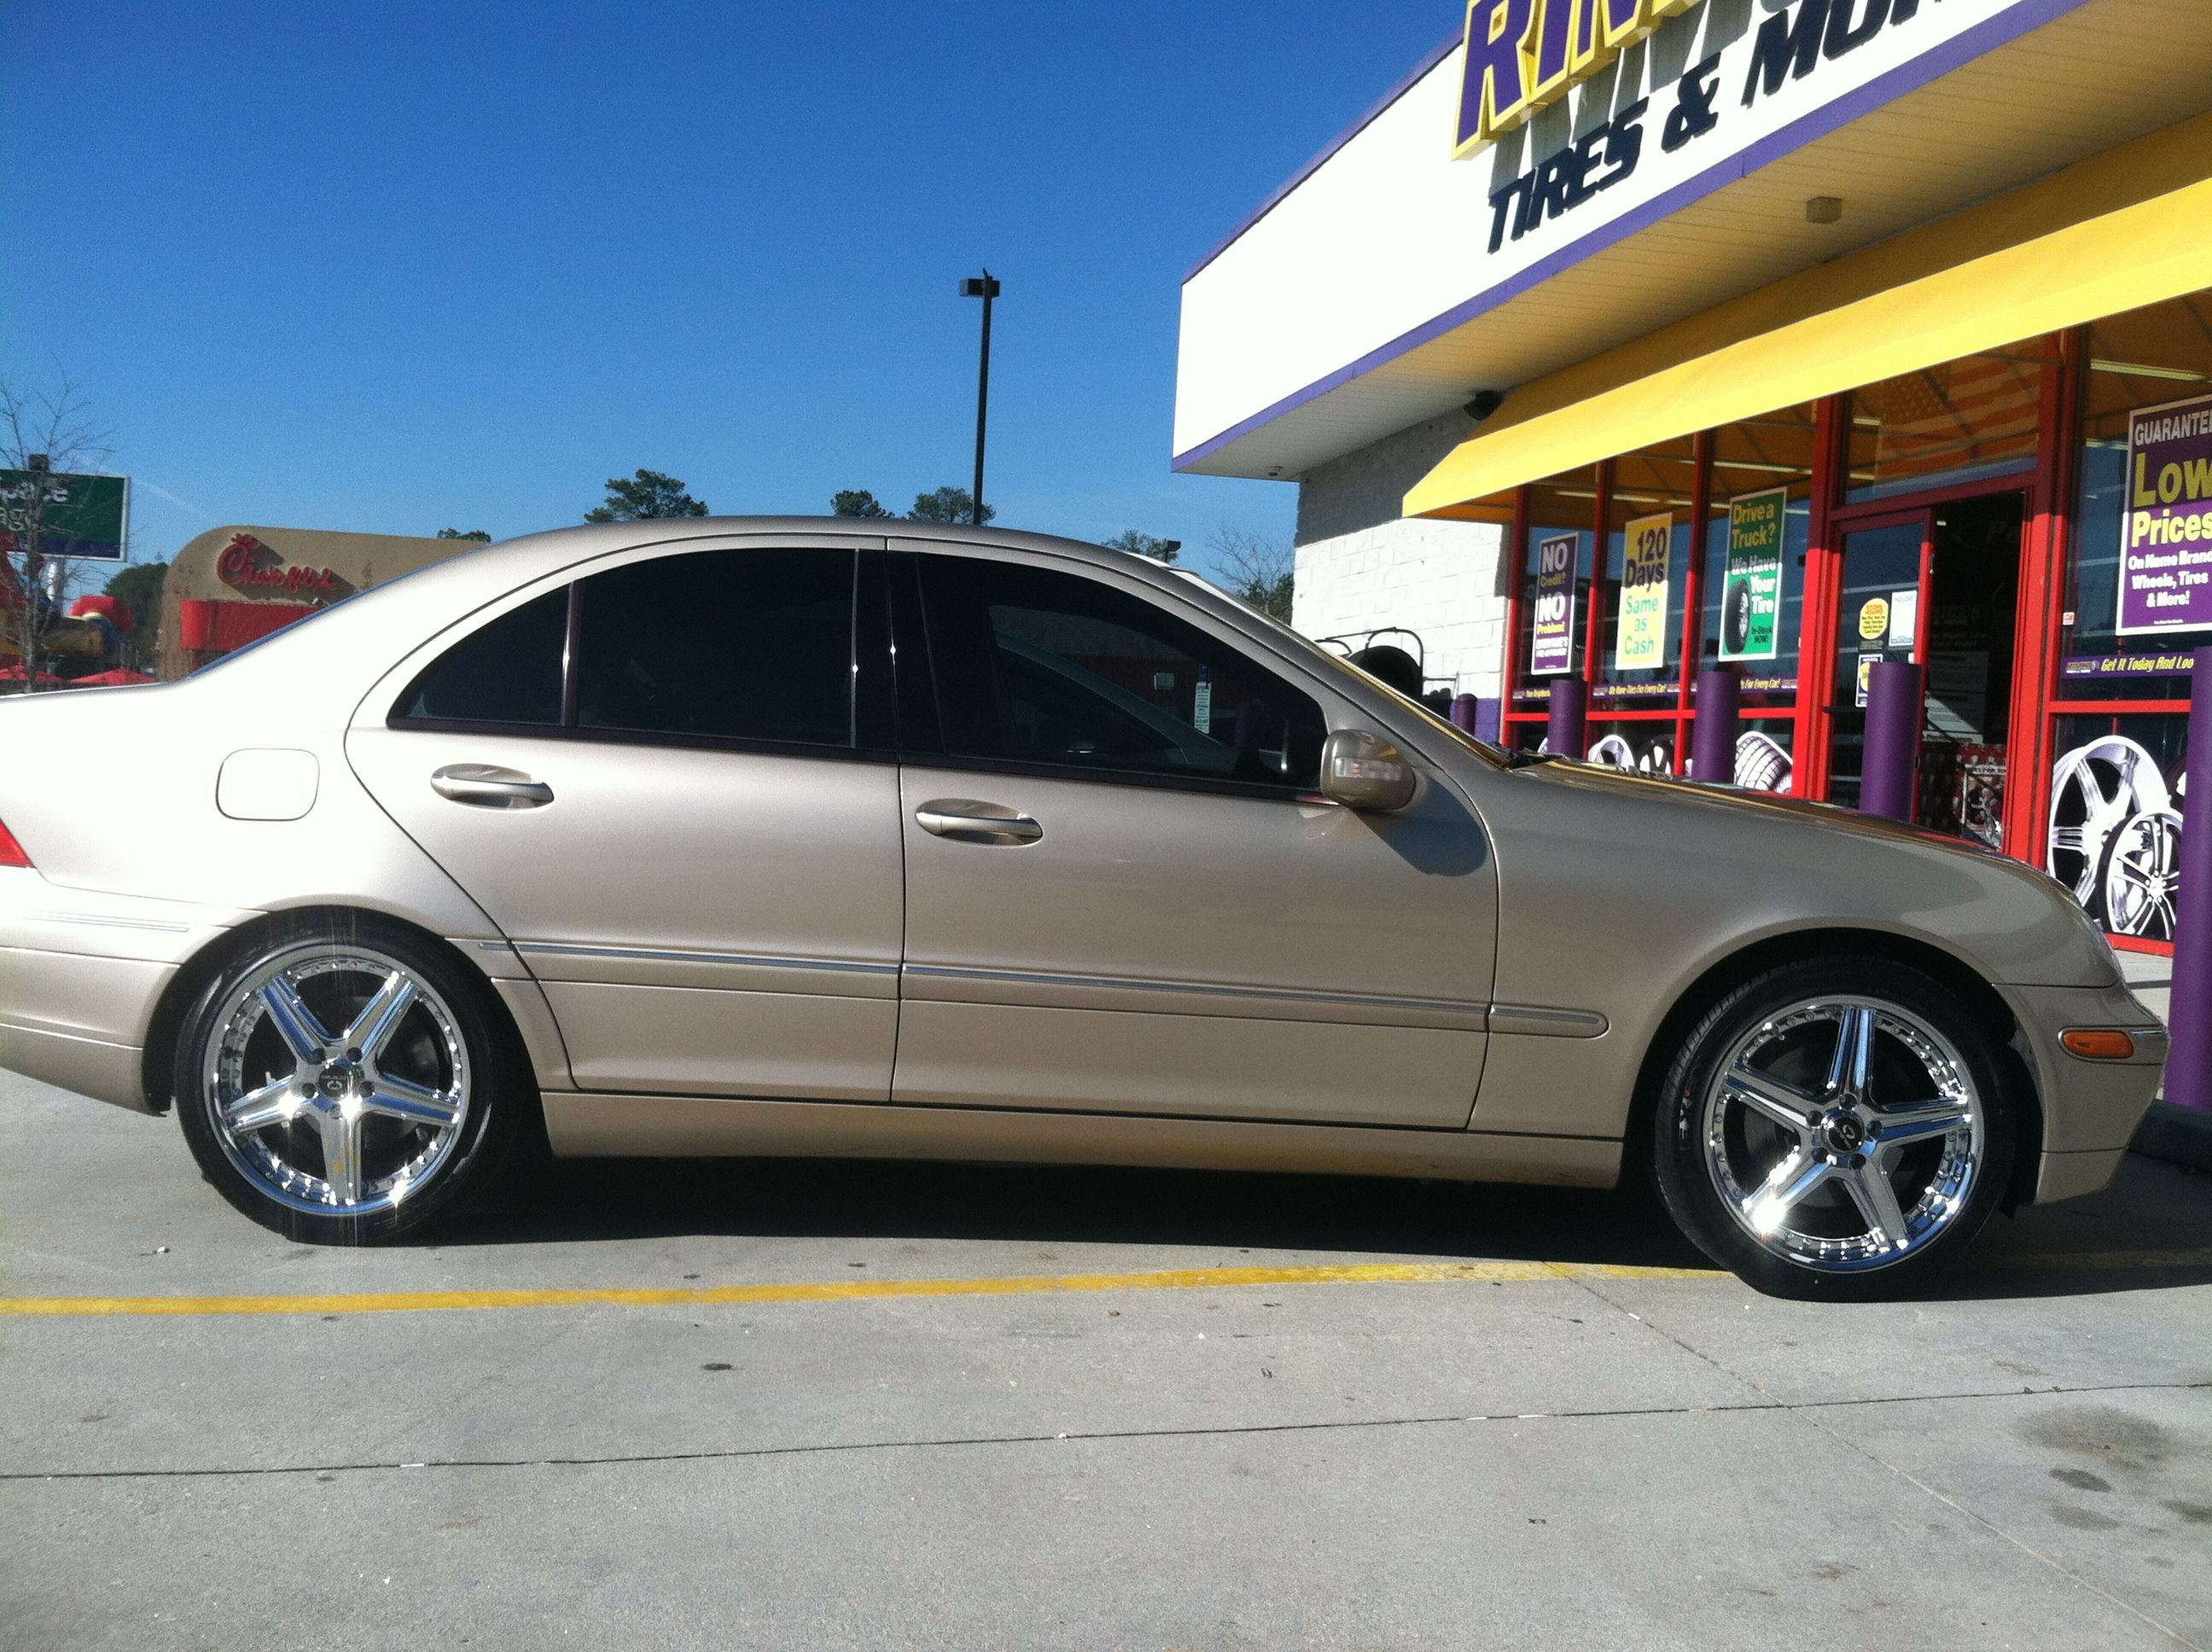 medium resolution of this is terrell hood s 2004 mercedes c240 sporting 18 lorenzo wl019 wheels photo taken at our stone mountain rimco store at 5540 memorial drive stone